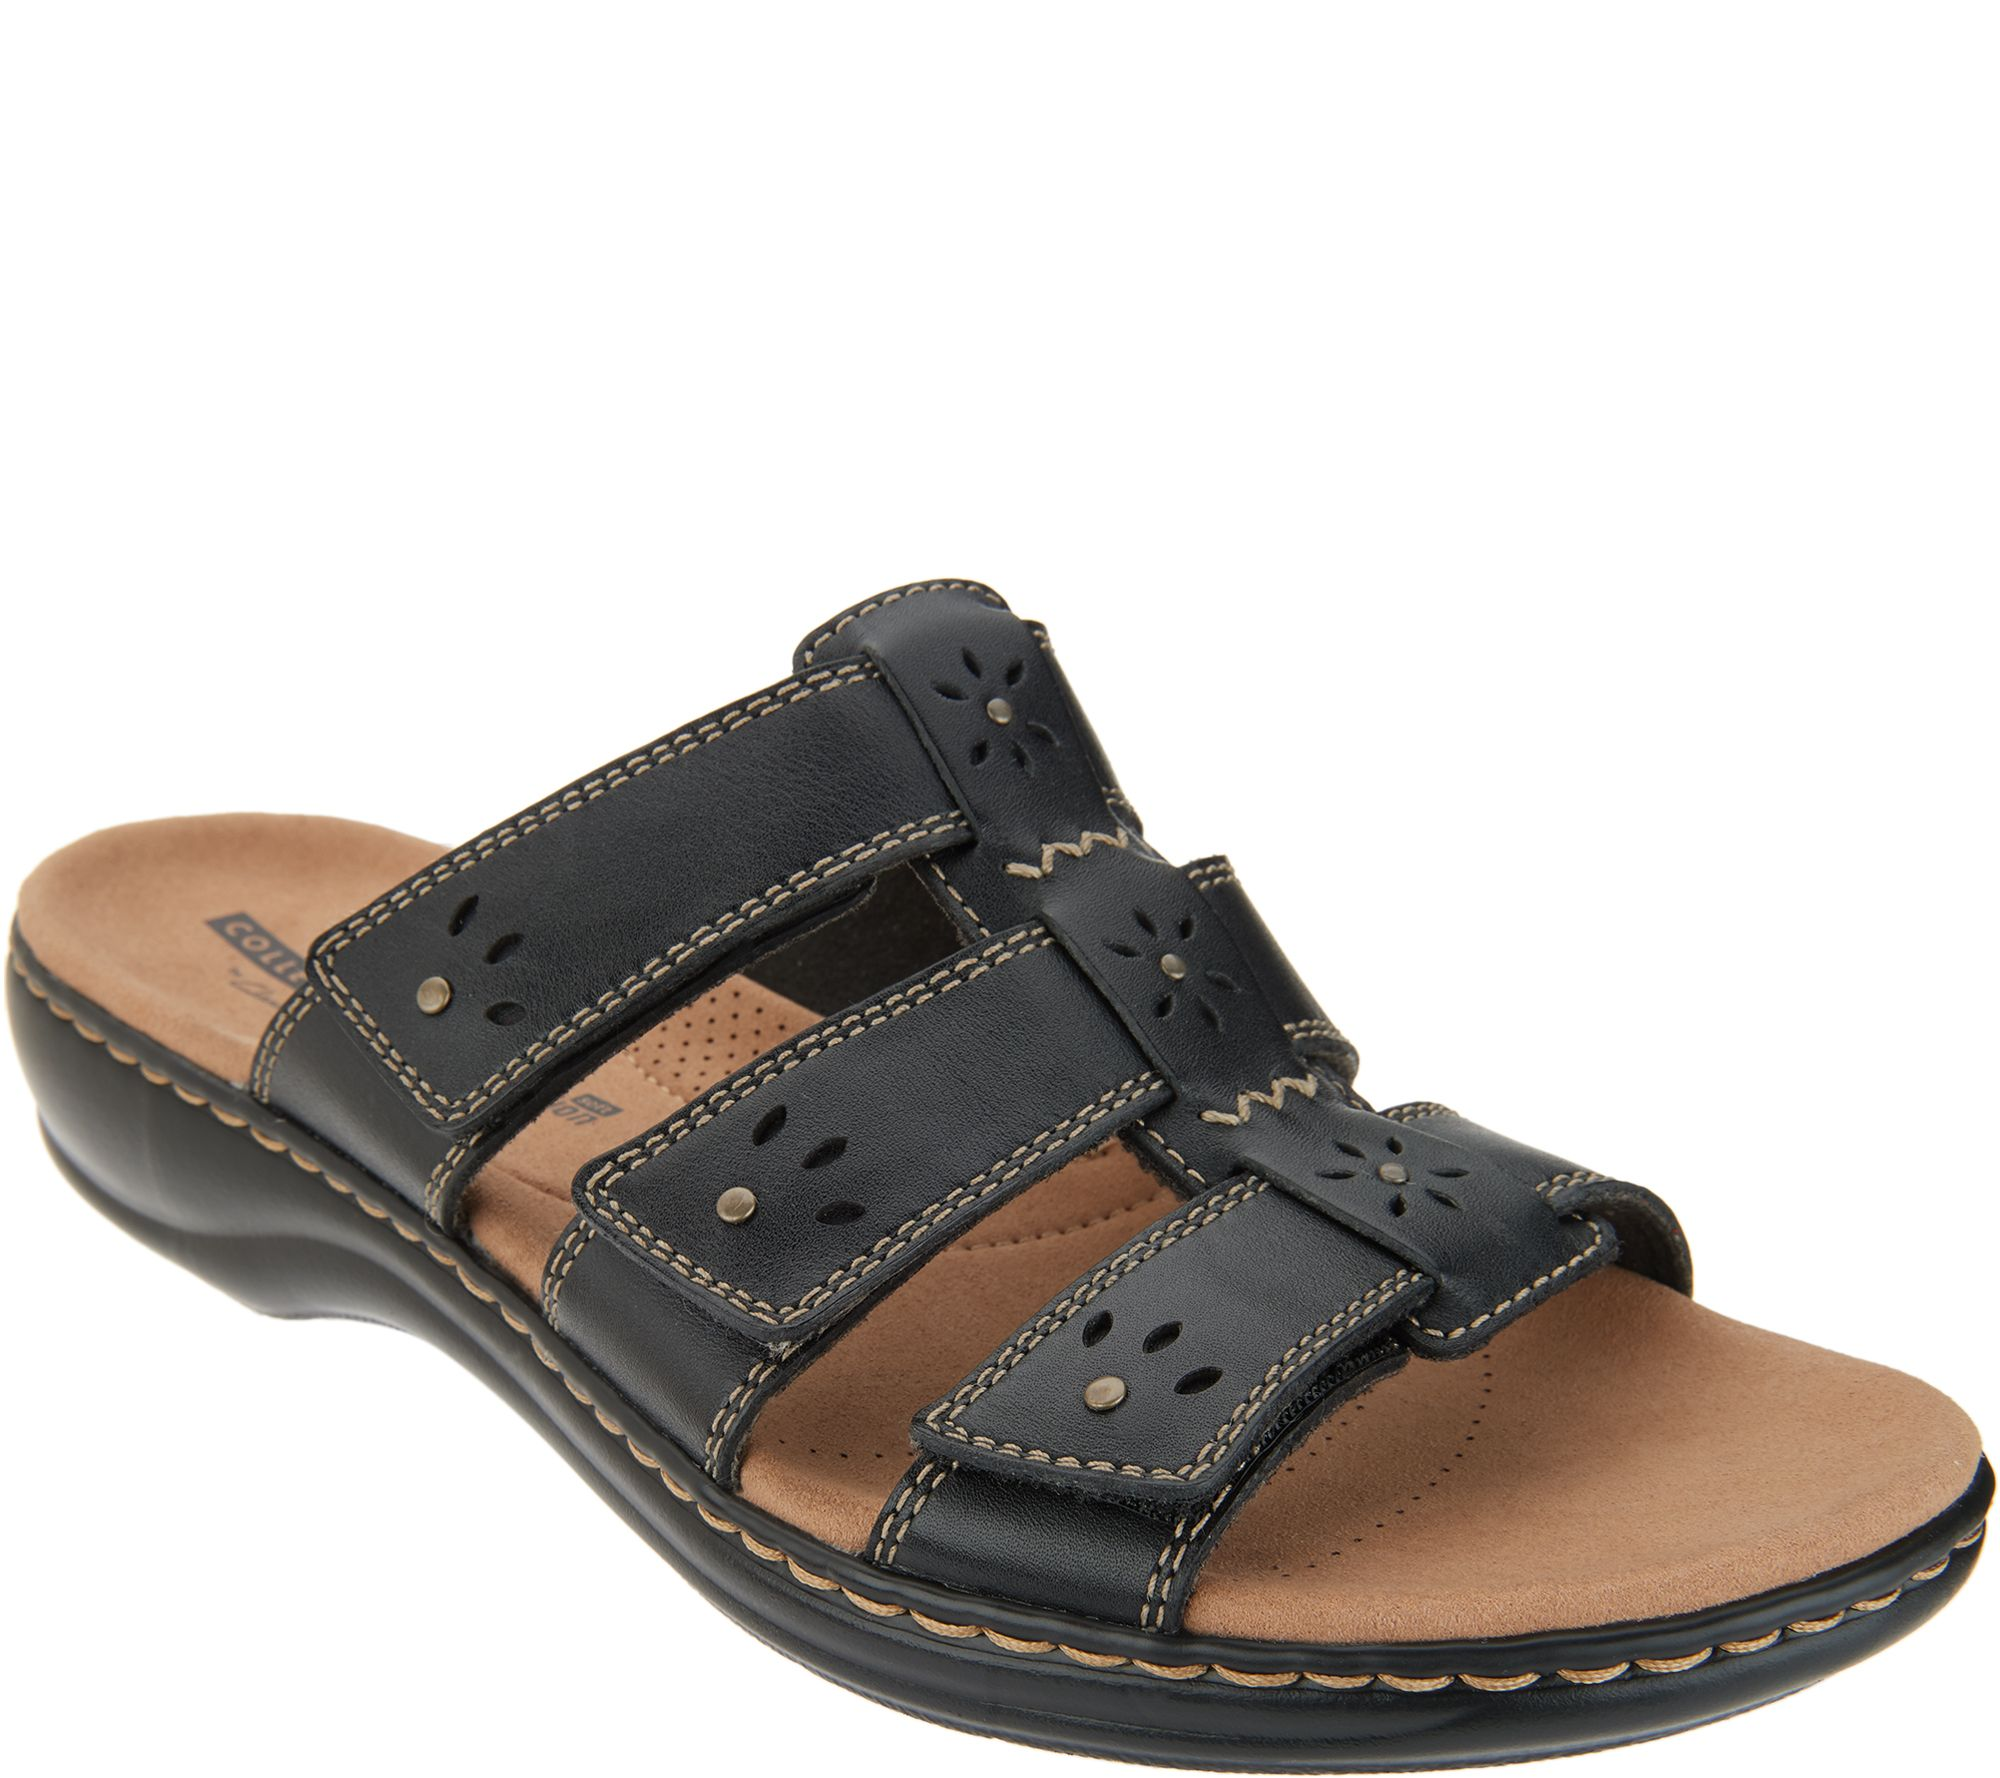 a1d939c5ca3 Clarks Collection Leather Slide Sandals - Leisa Spring - Page 1 — QVC.com